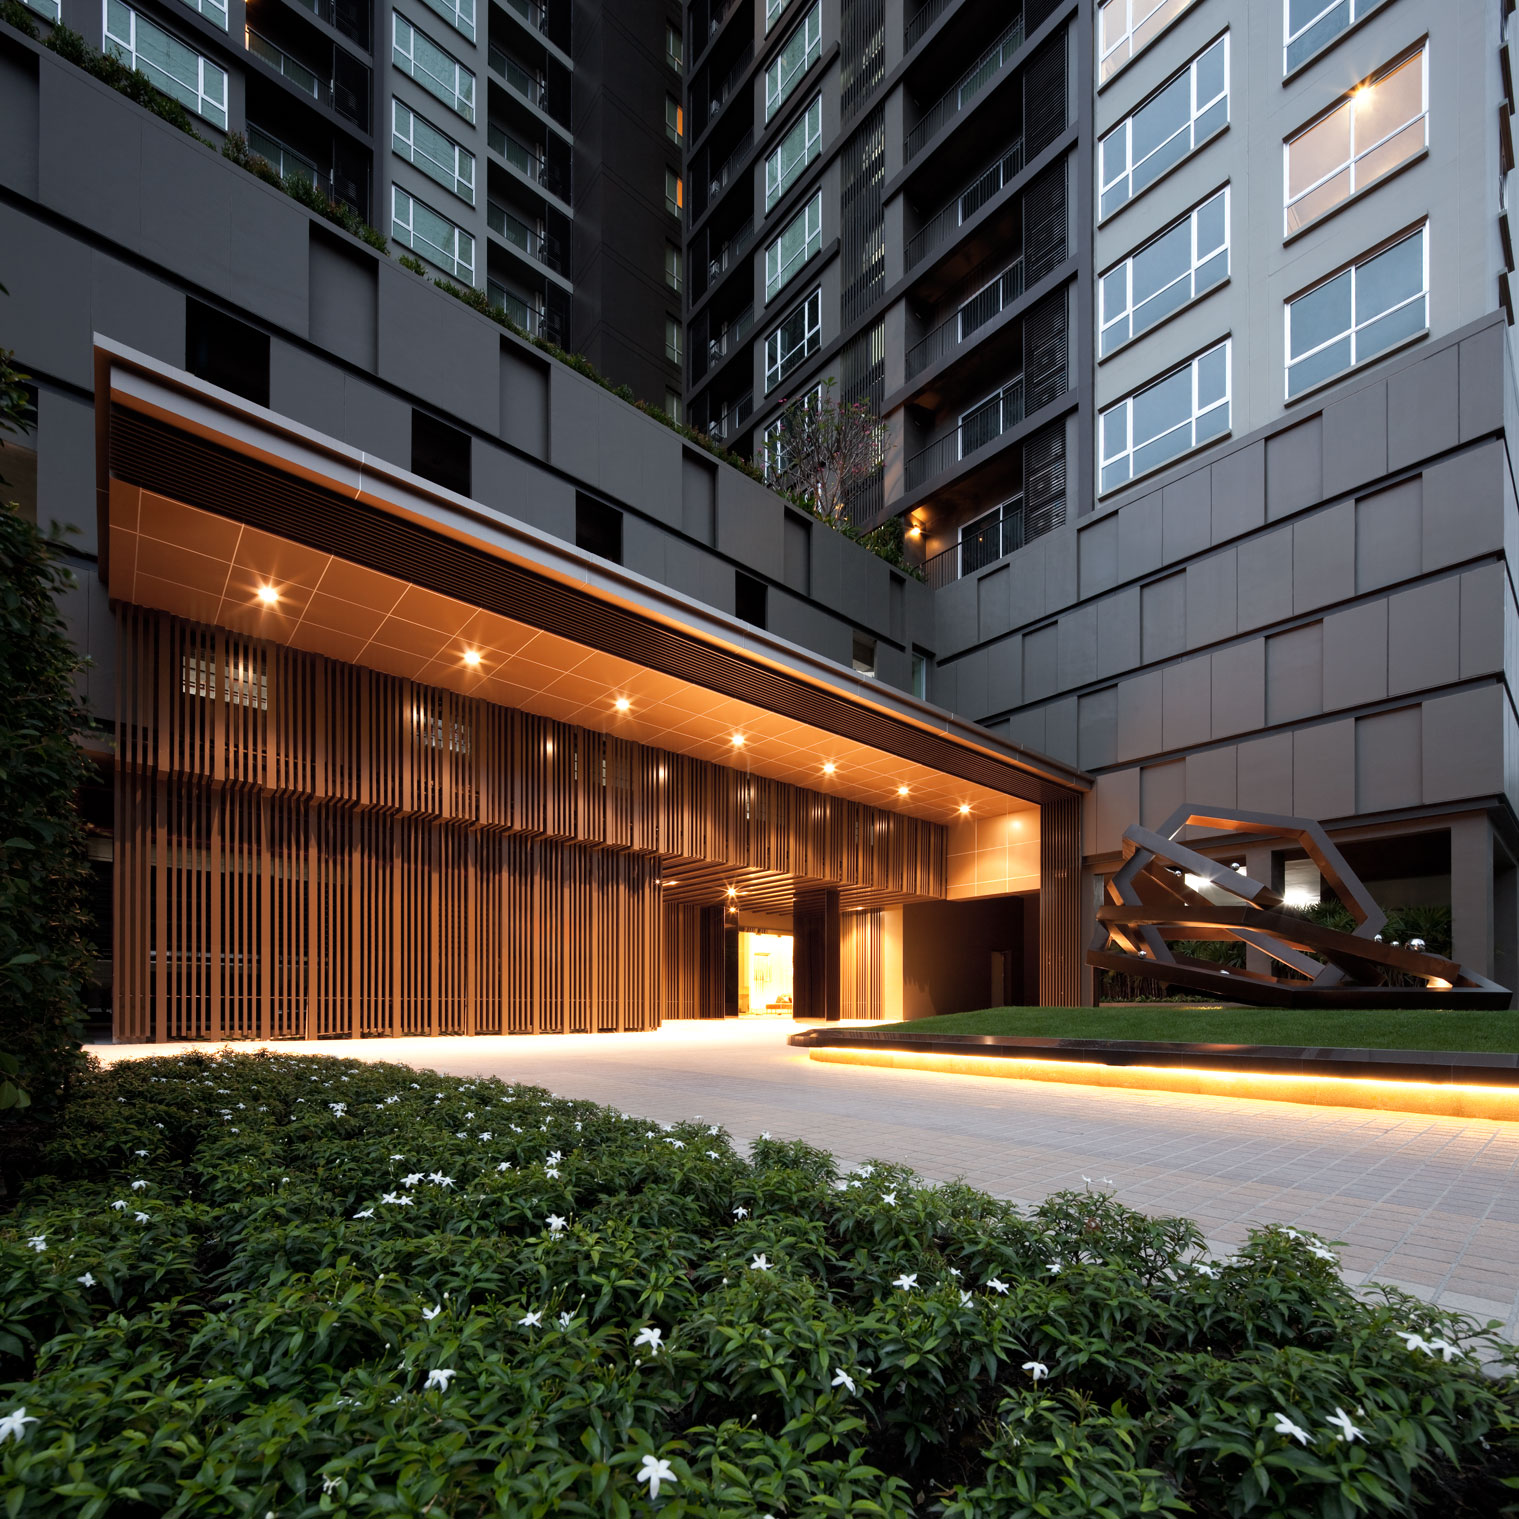 Commercial Property Landscape Design: Wison Tungthunya's Photography